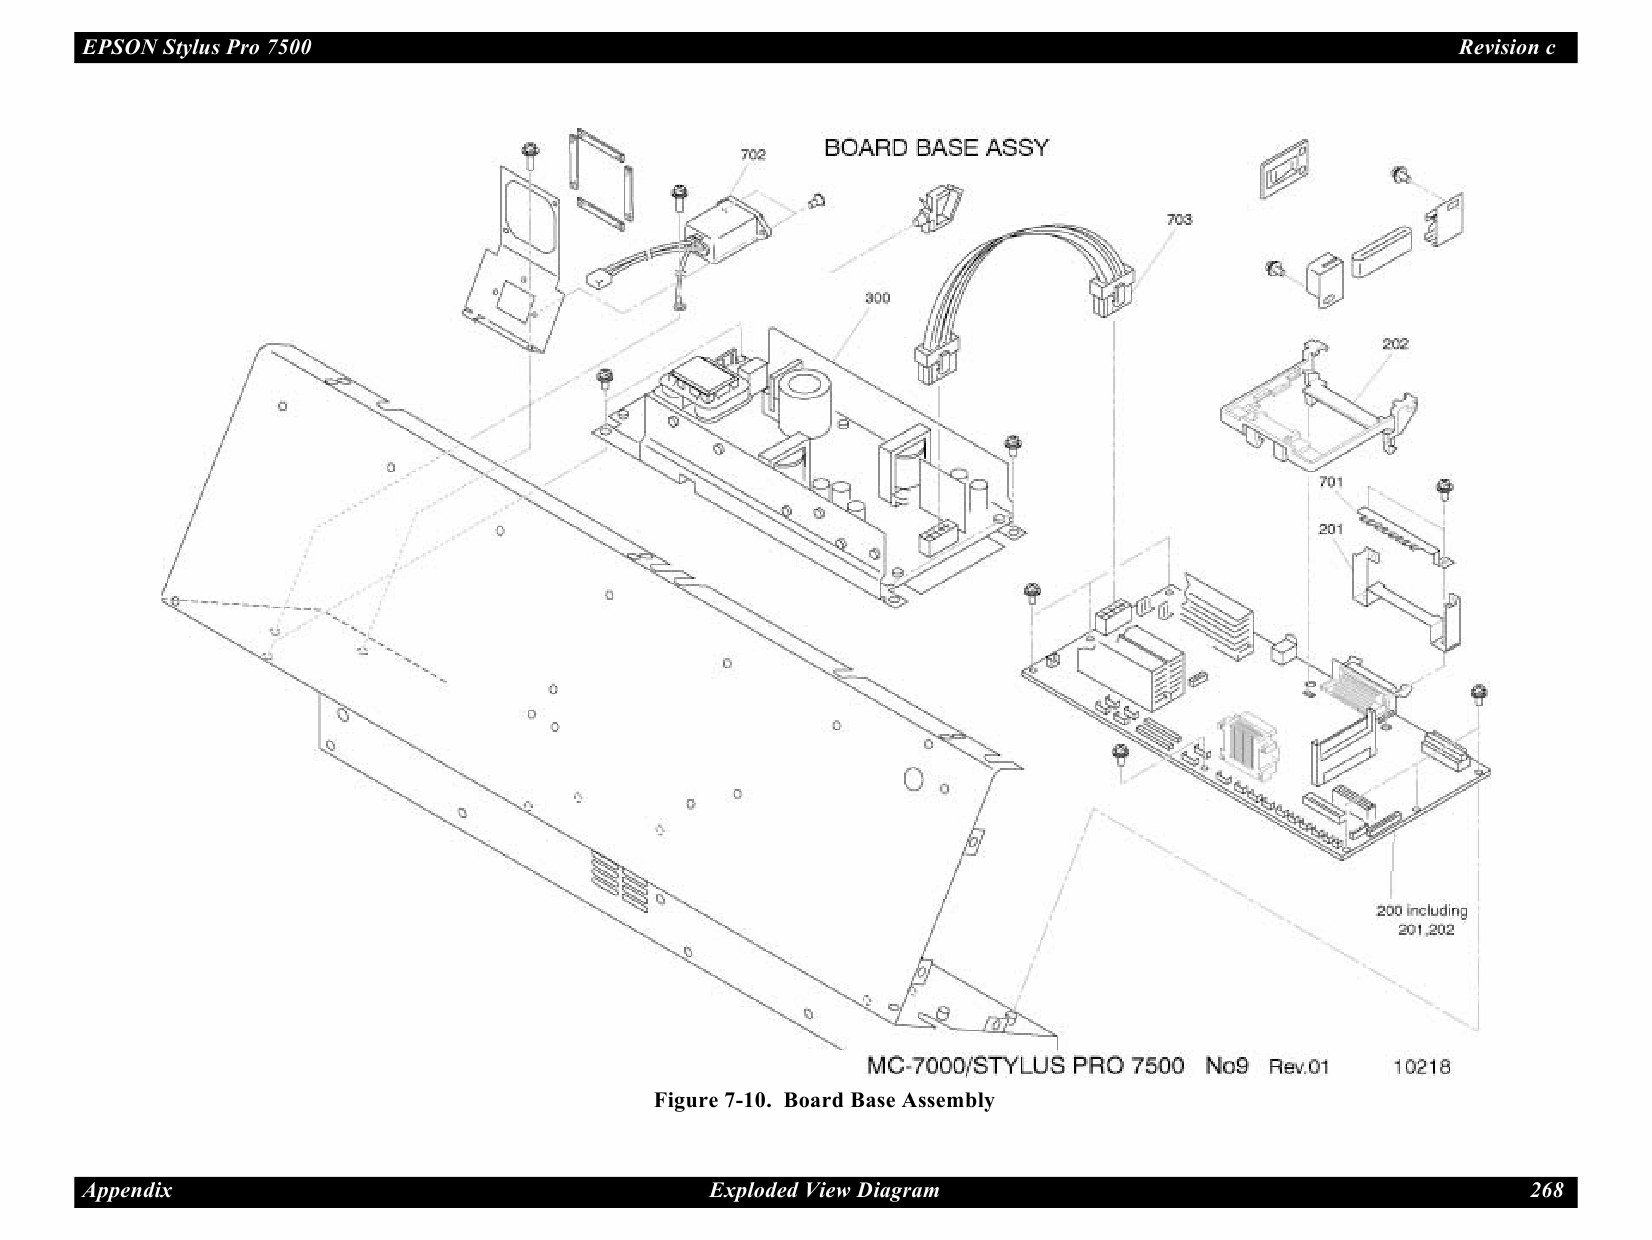 EPSON StylusPro 7500 Parts Manual